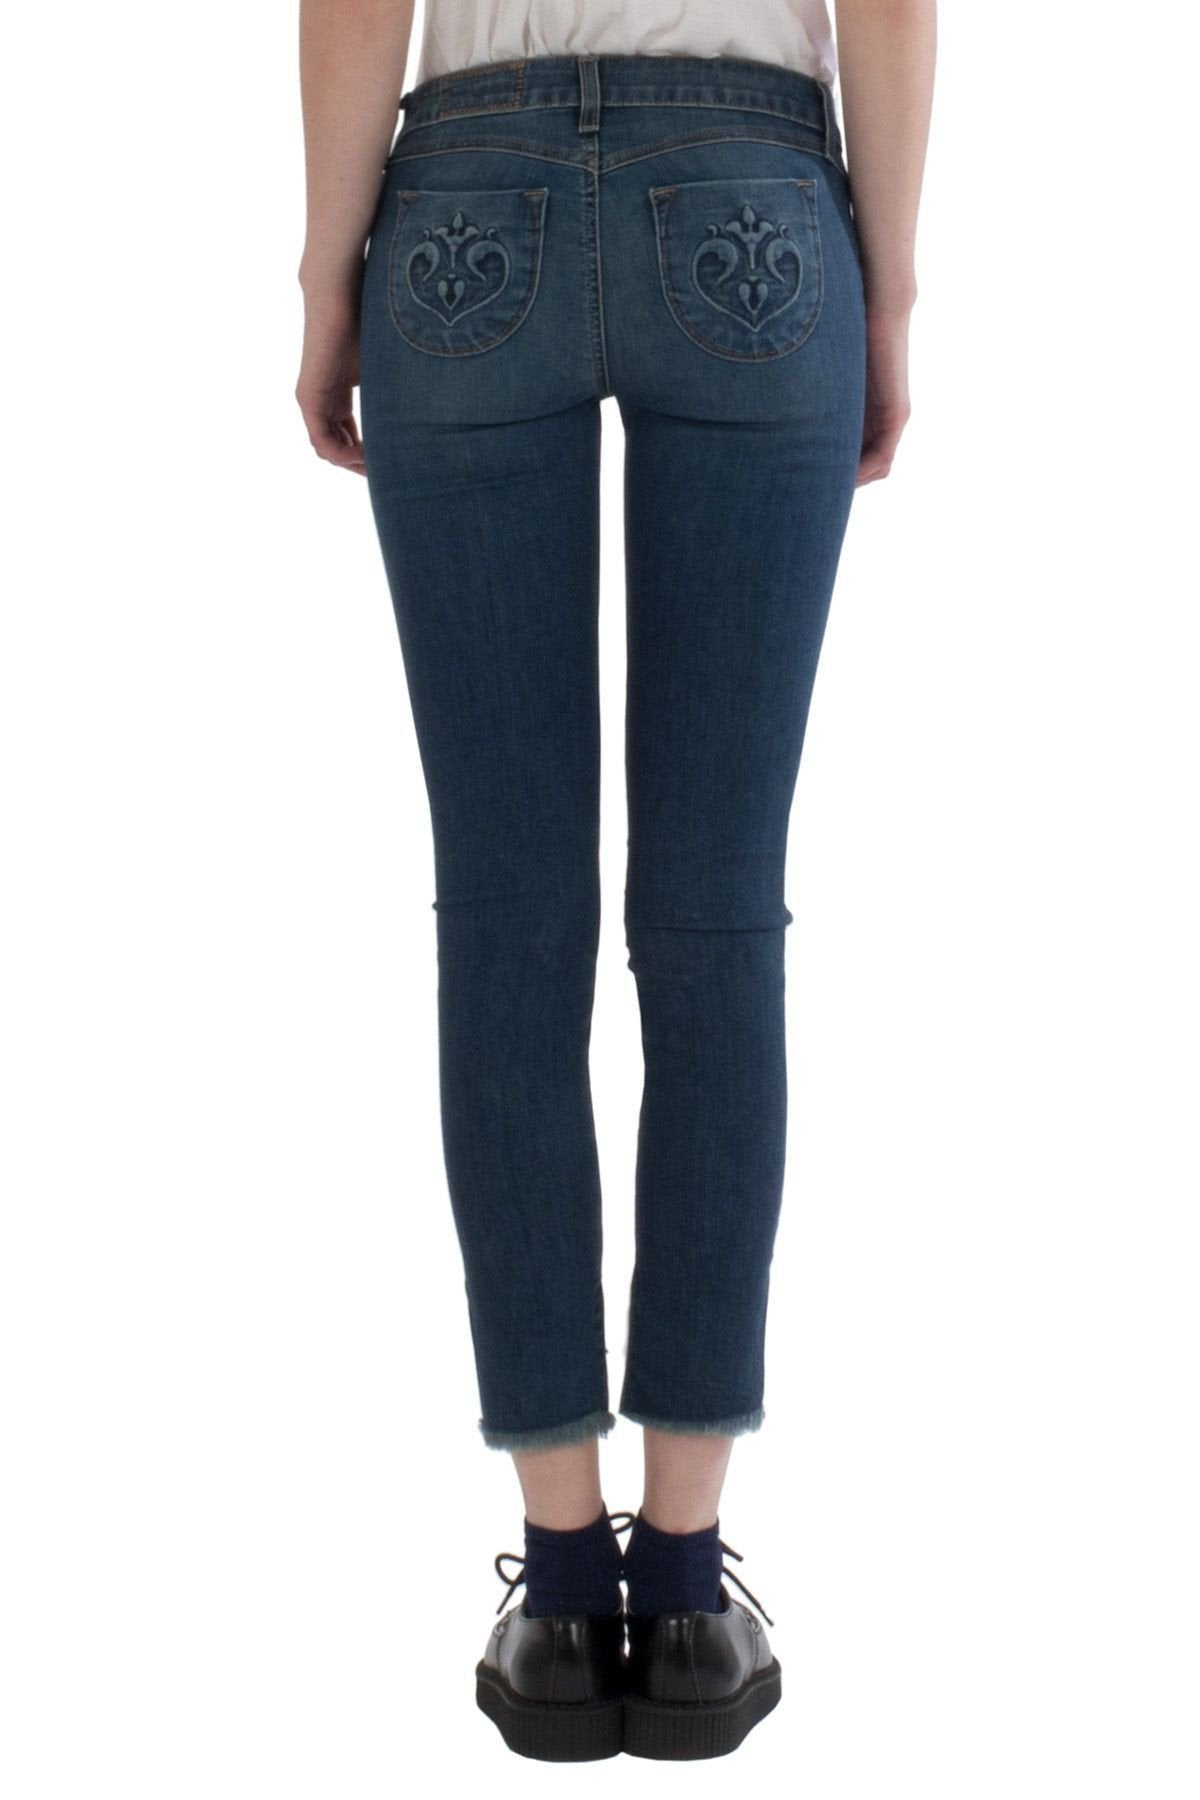 Hannah In Blow My Mind Jeans-Skinny Jeans-Siwy Denim